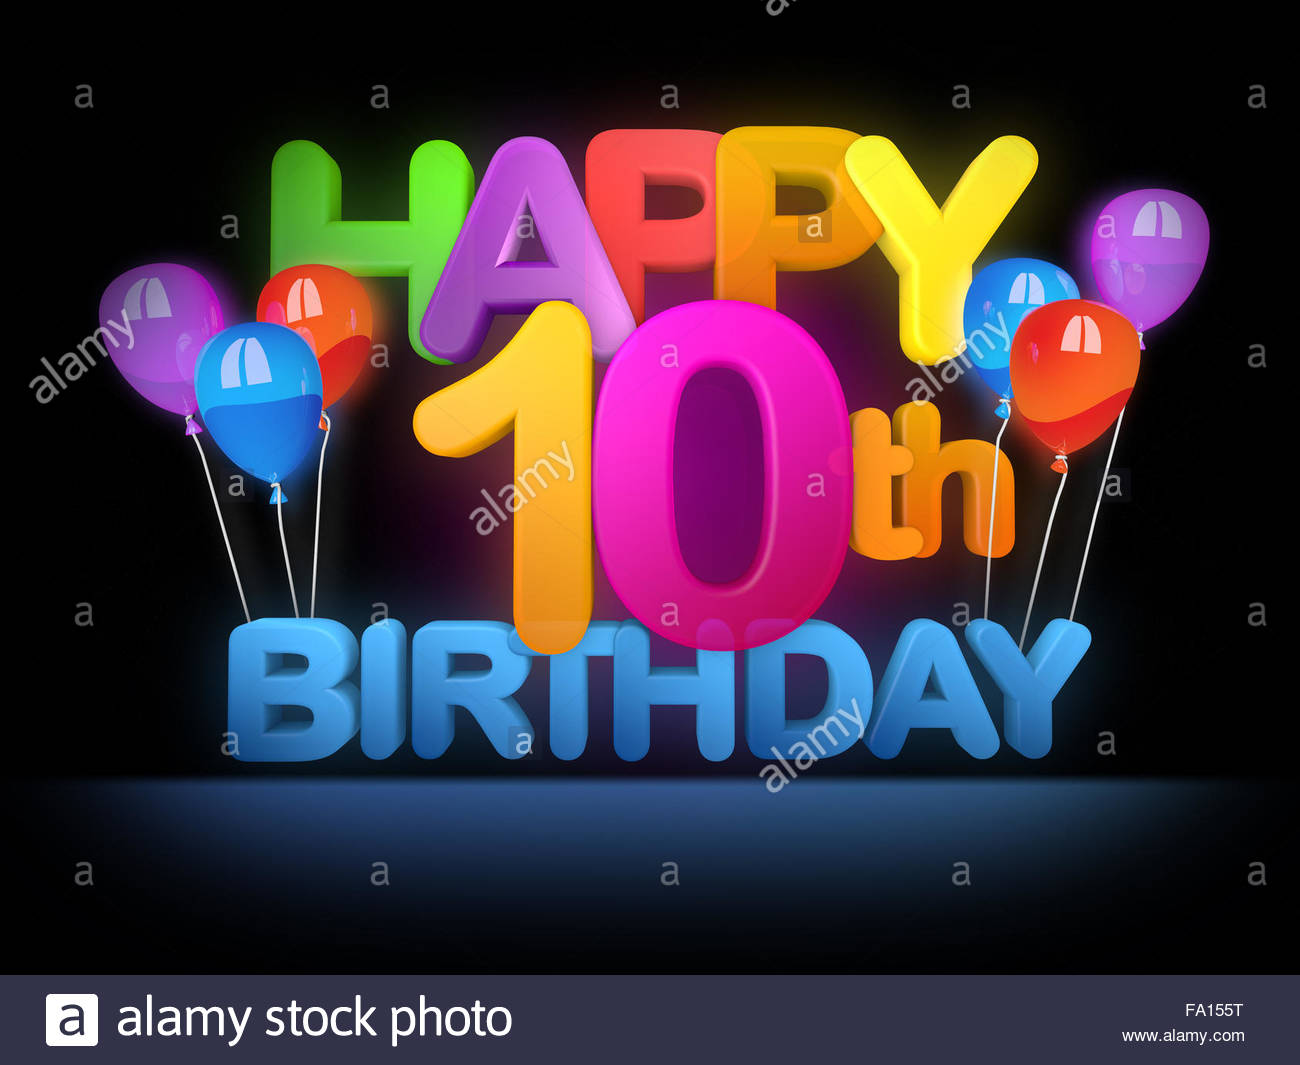 happy 10th birthday clipart ; happy-10th-birthday-title-in-big-letters-FA155T